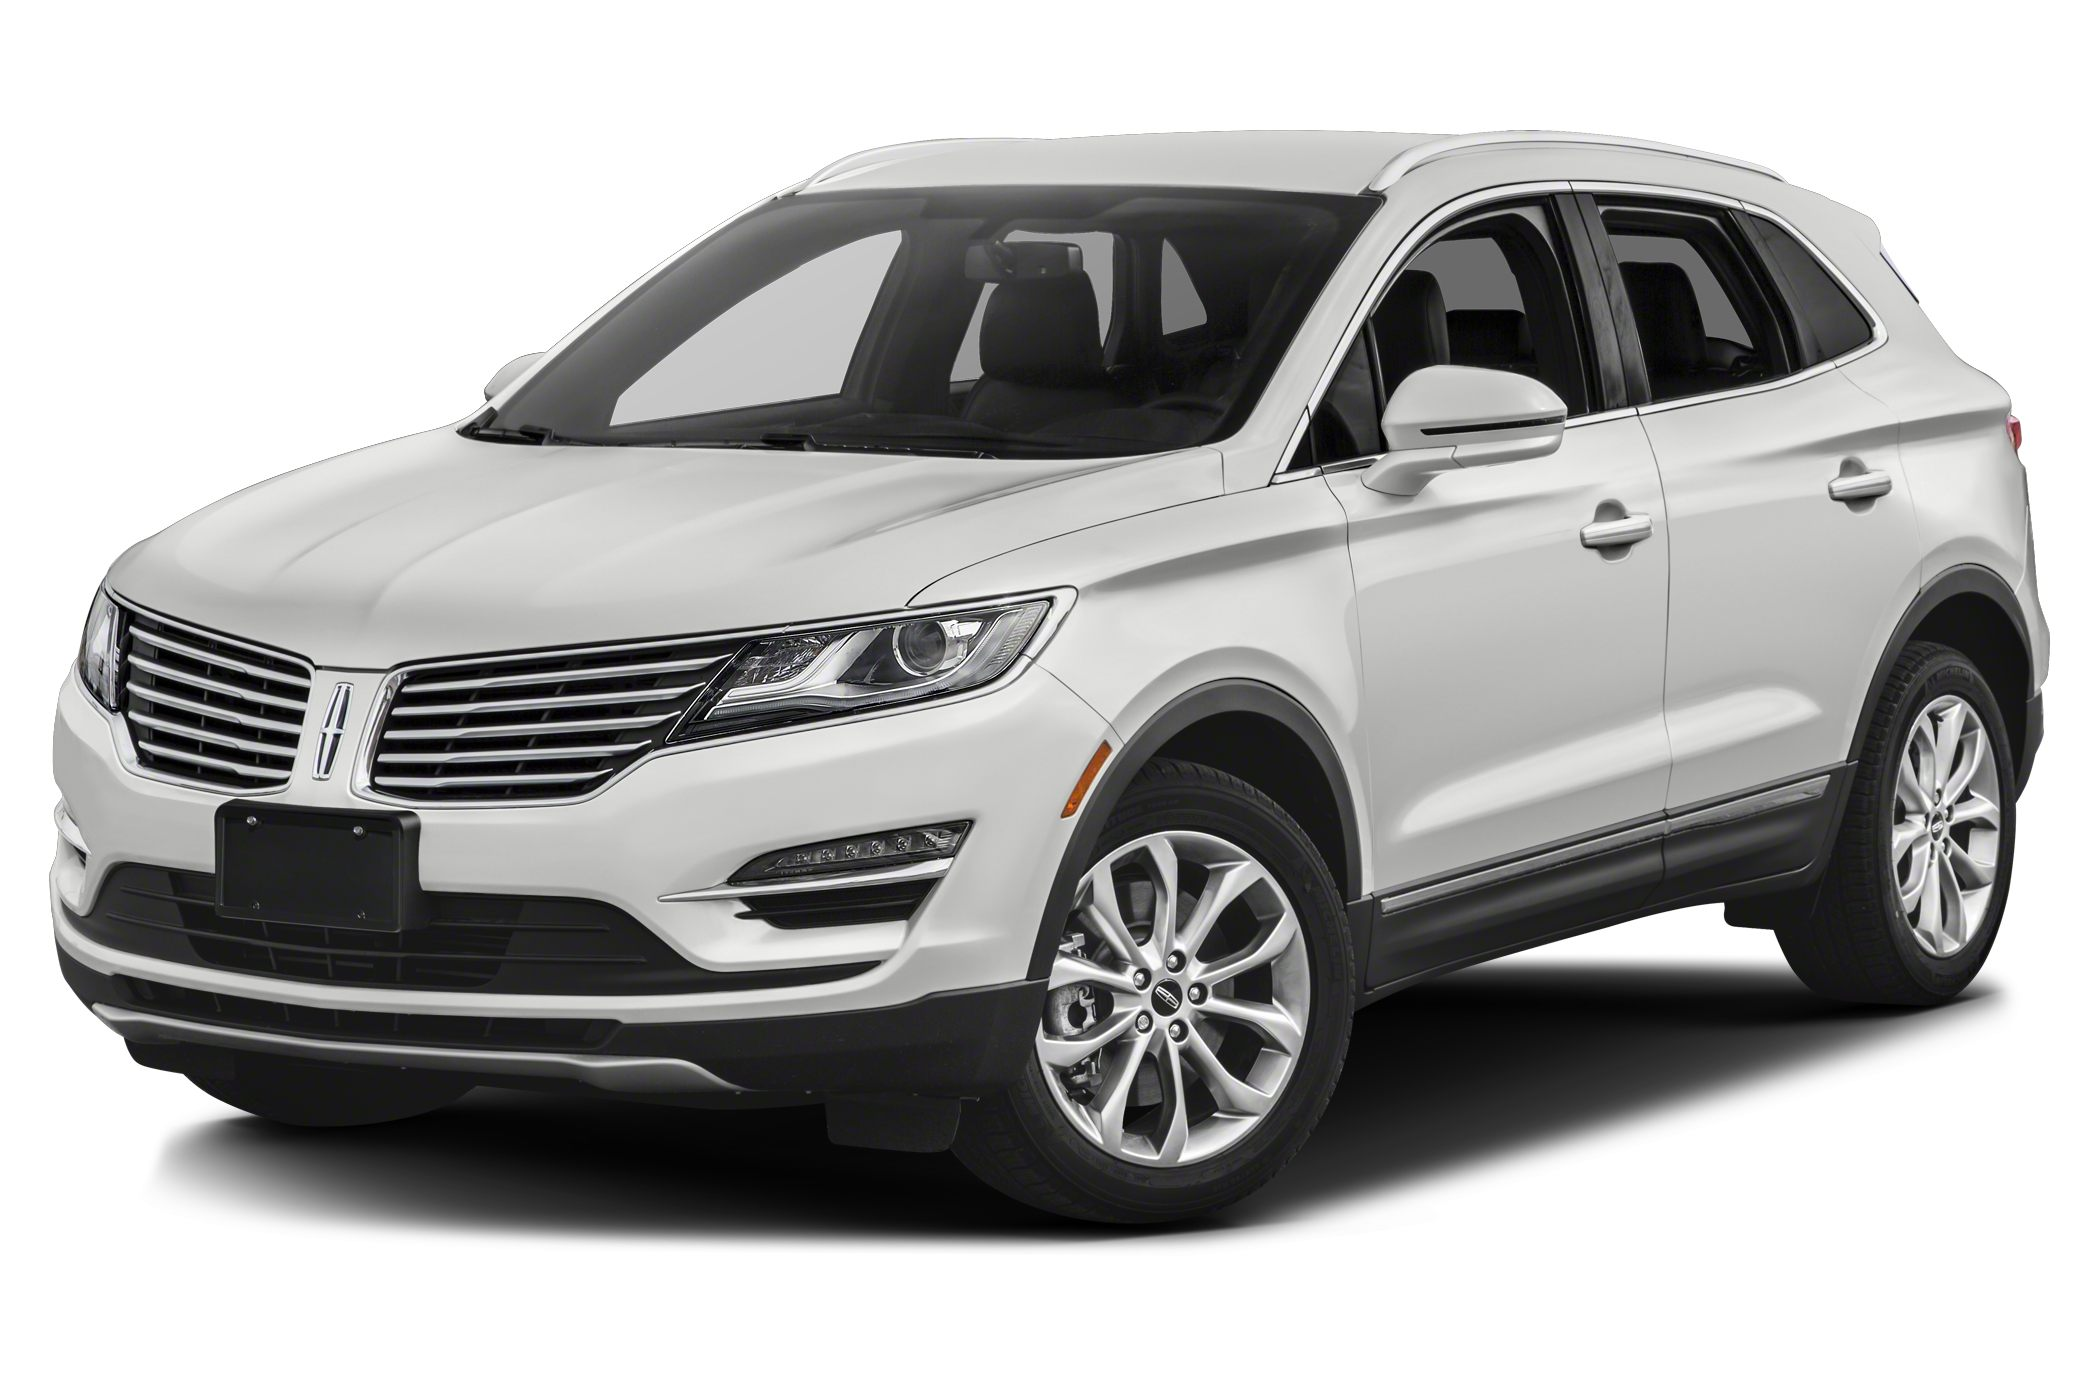 2015 Lincoln MKC Base SUV for sale in Tampa for $40,530 with 3 miles.